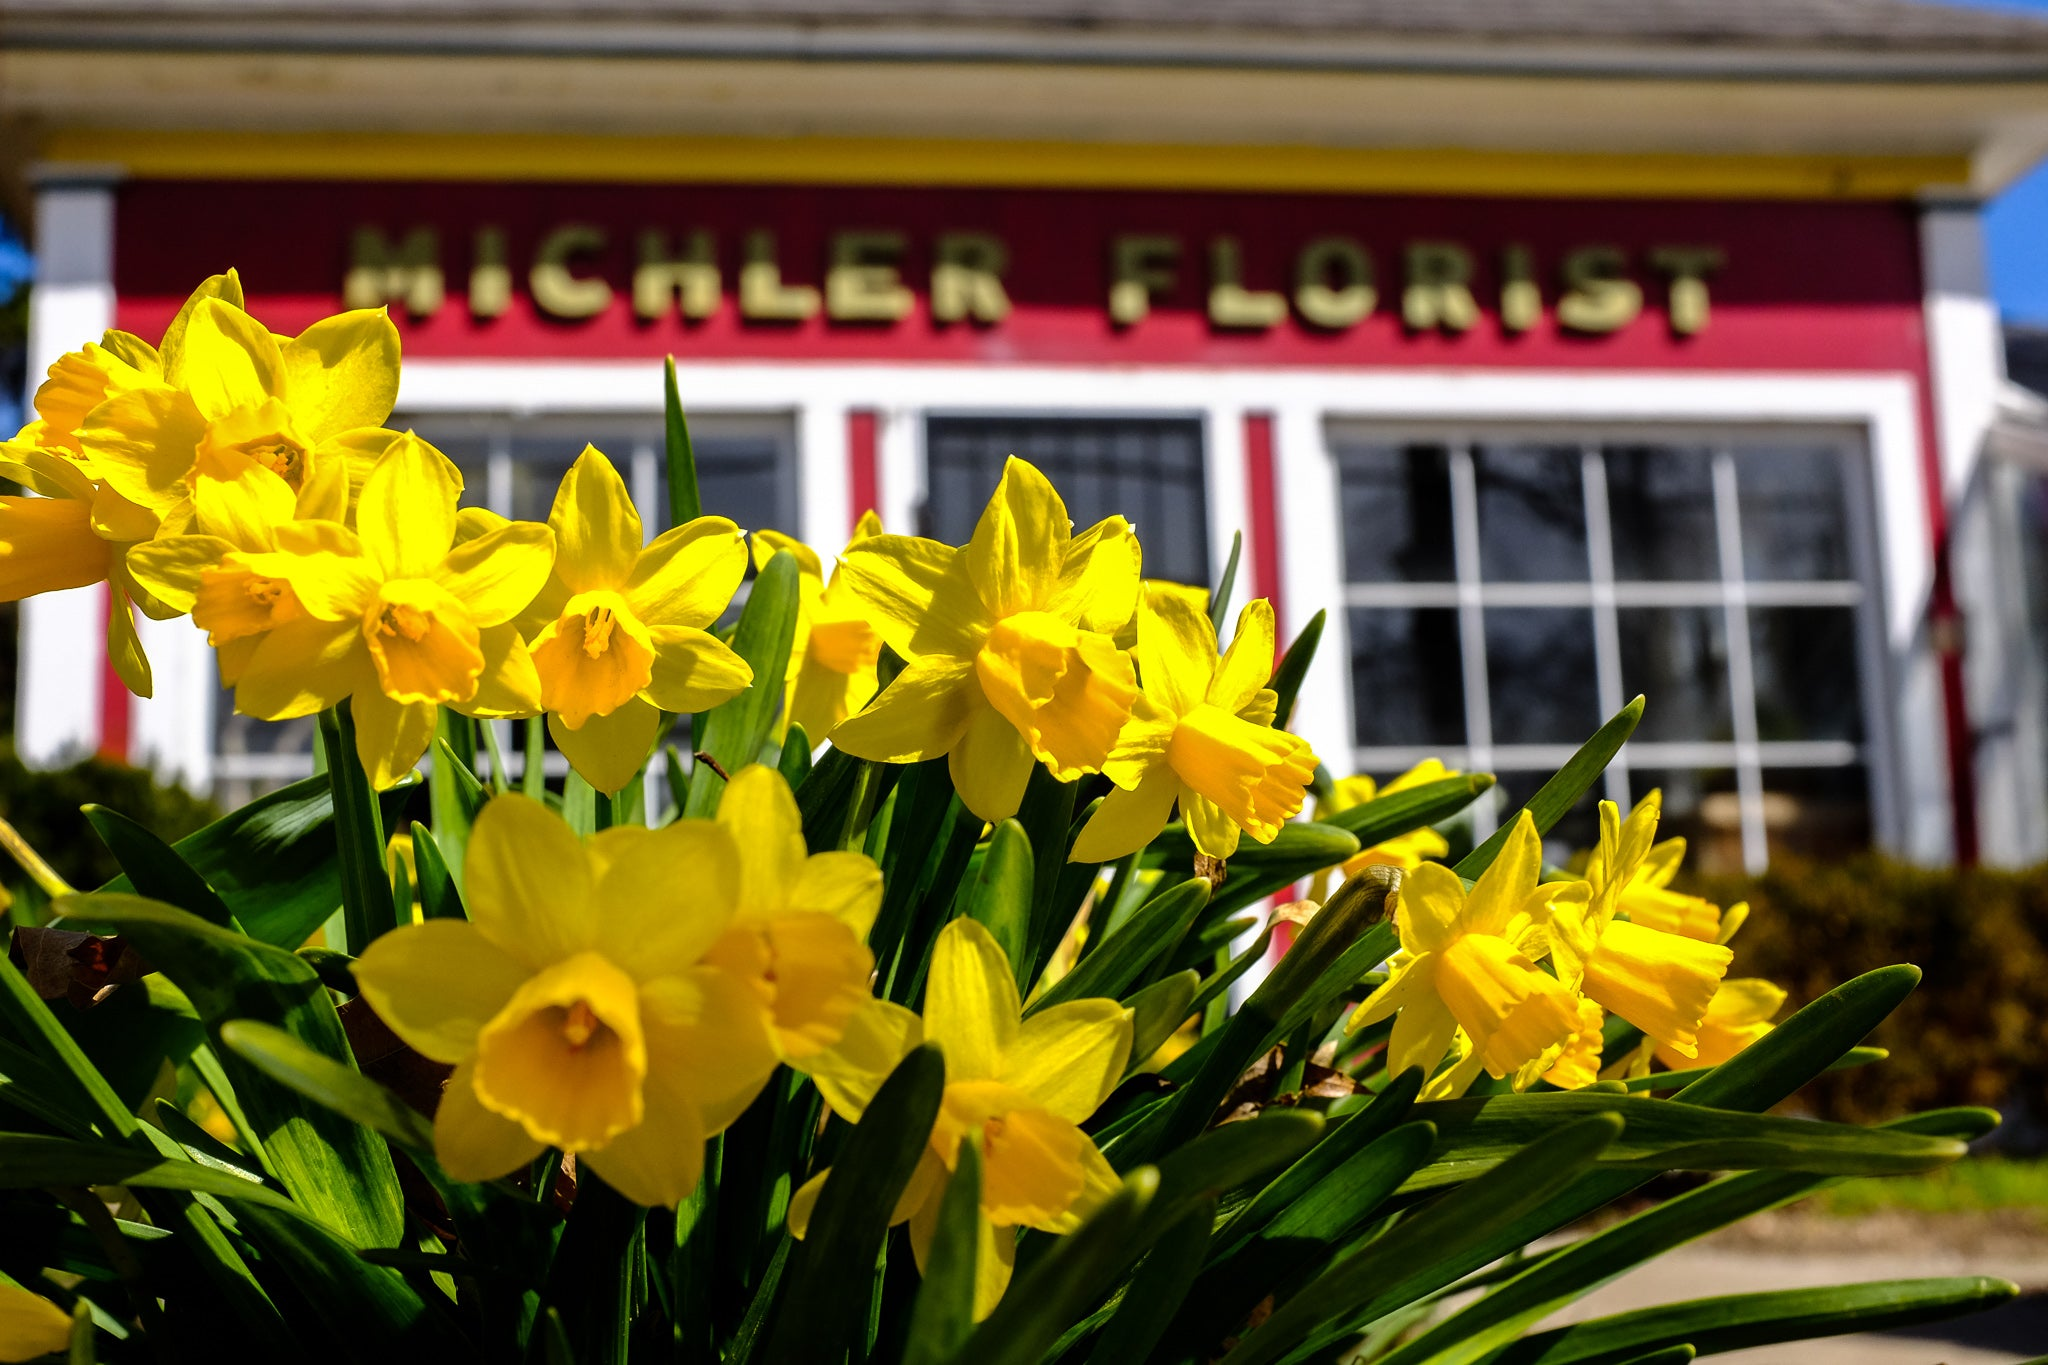 Tete-a-Tete Daffodils in Bloom at Michler's Florist